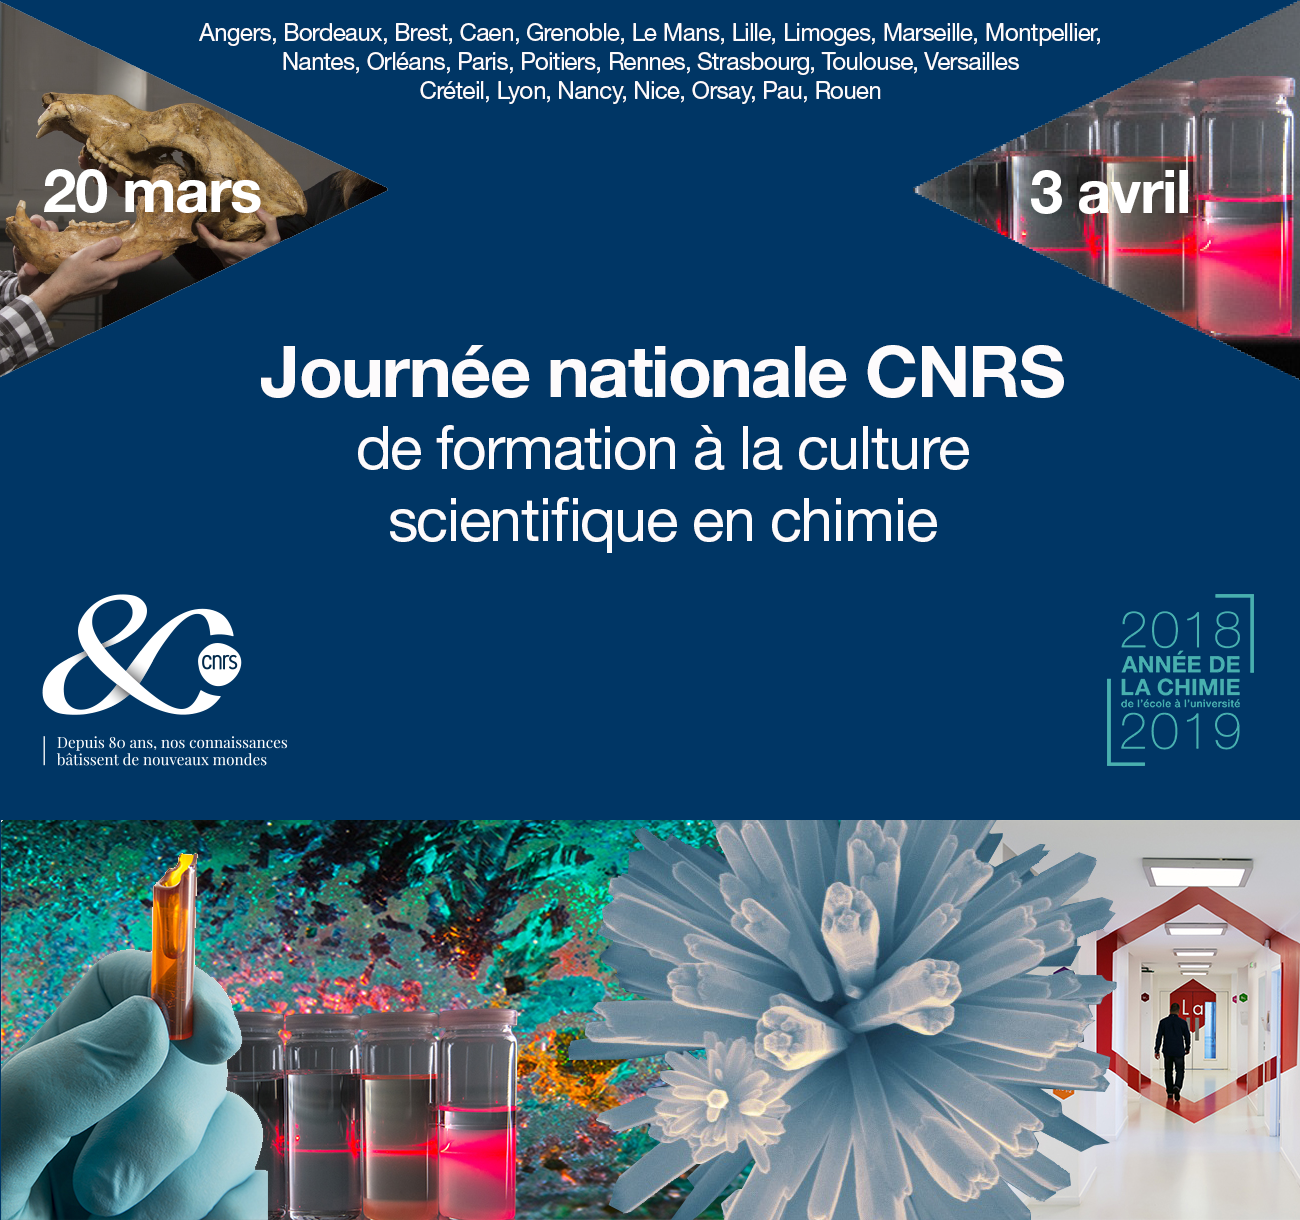 Journées nationales de formation à la culture scientifique en chimie à Bordeaux